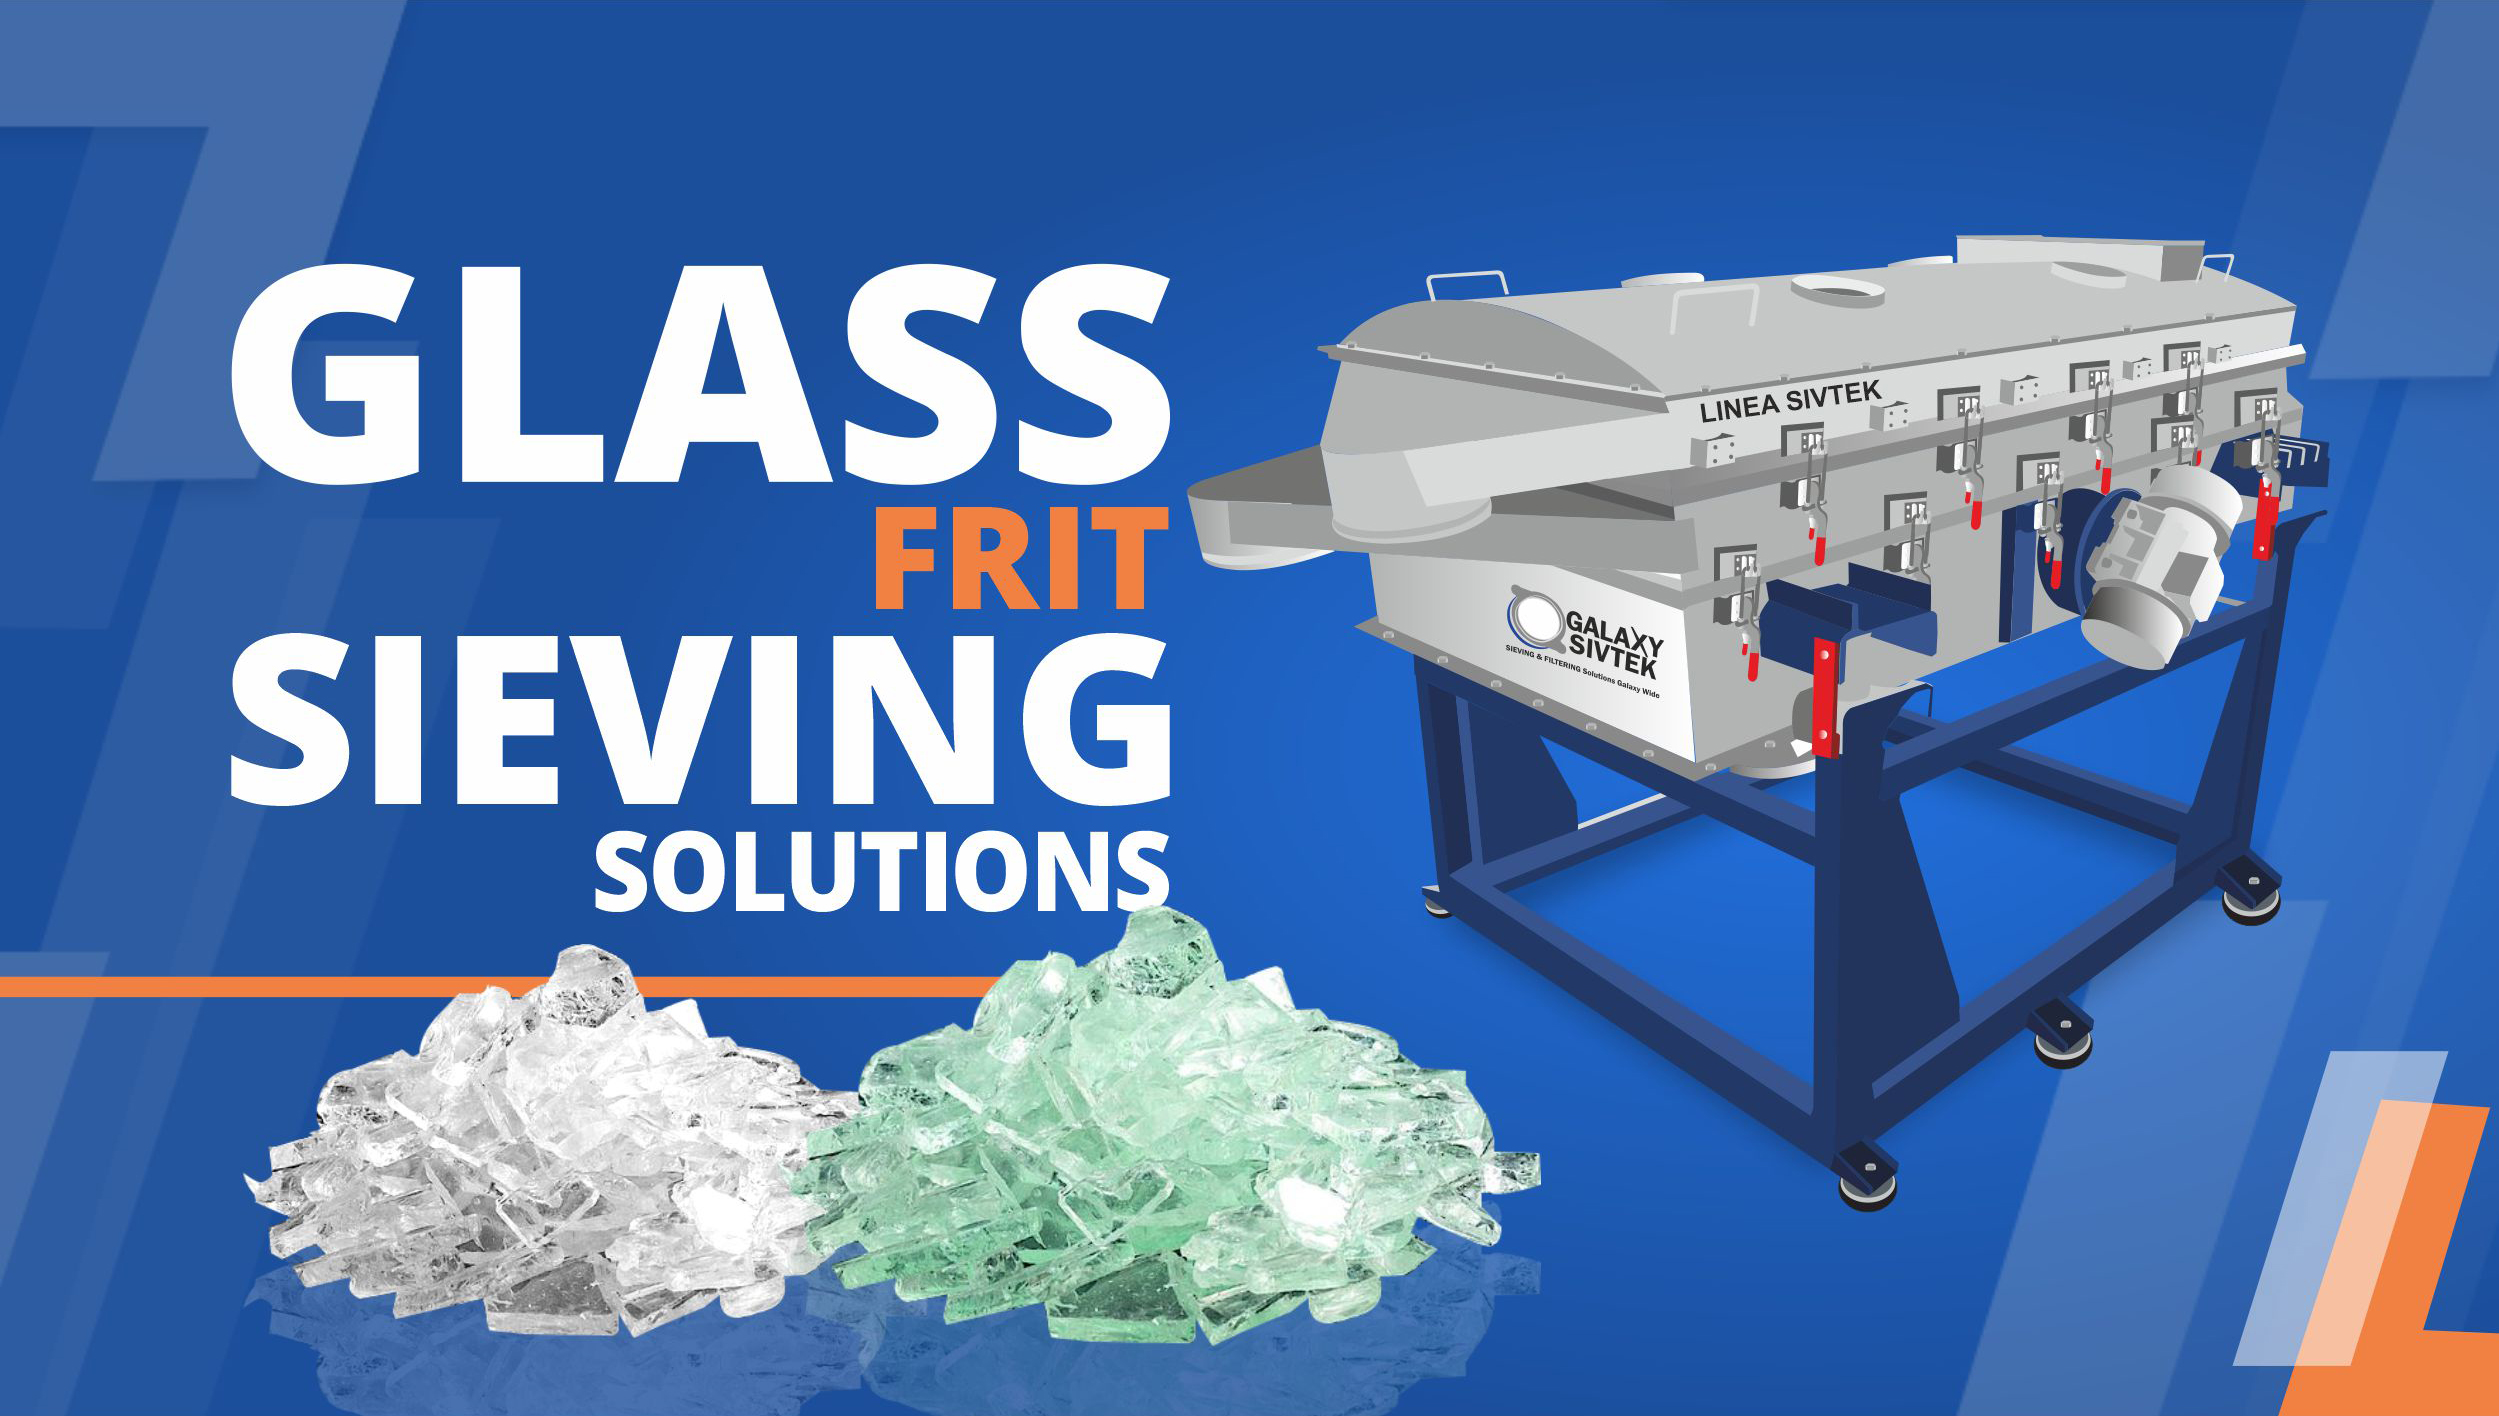 Glass Frit Sieving Solutions